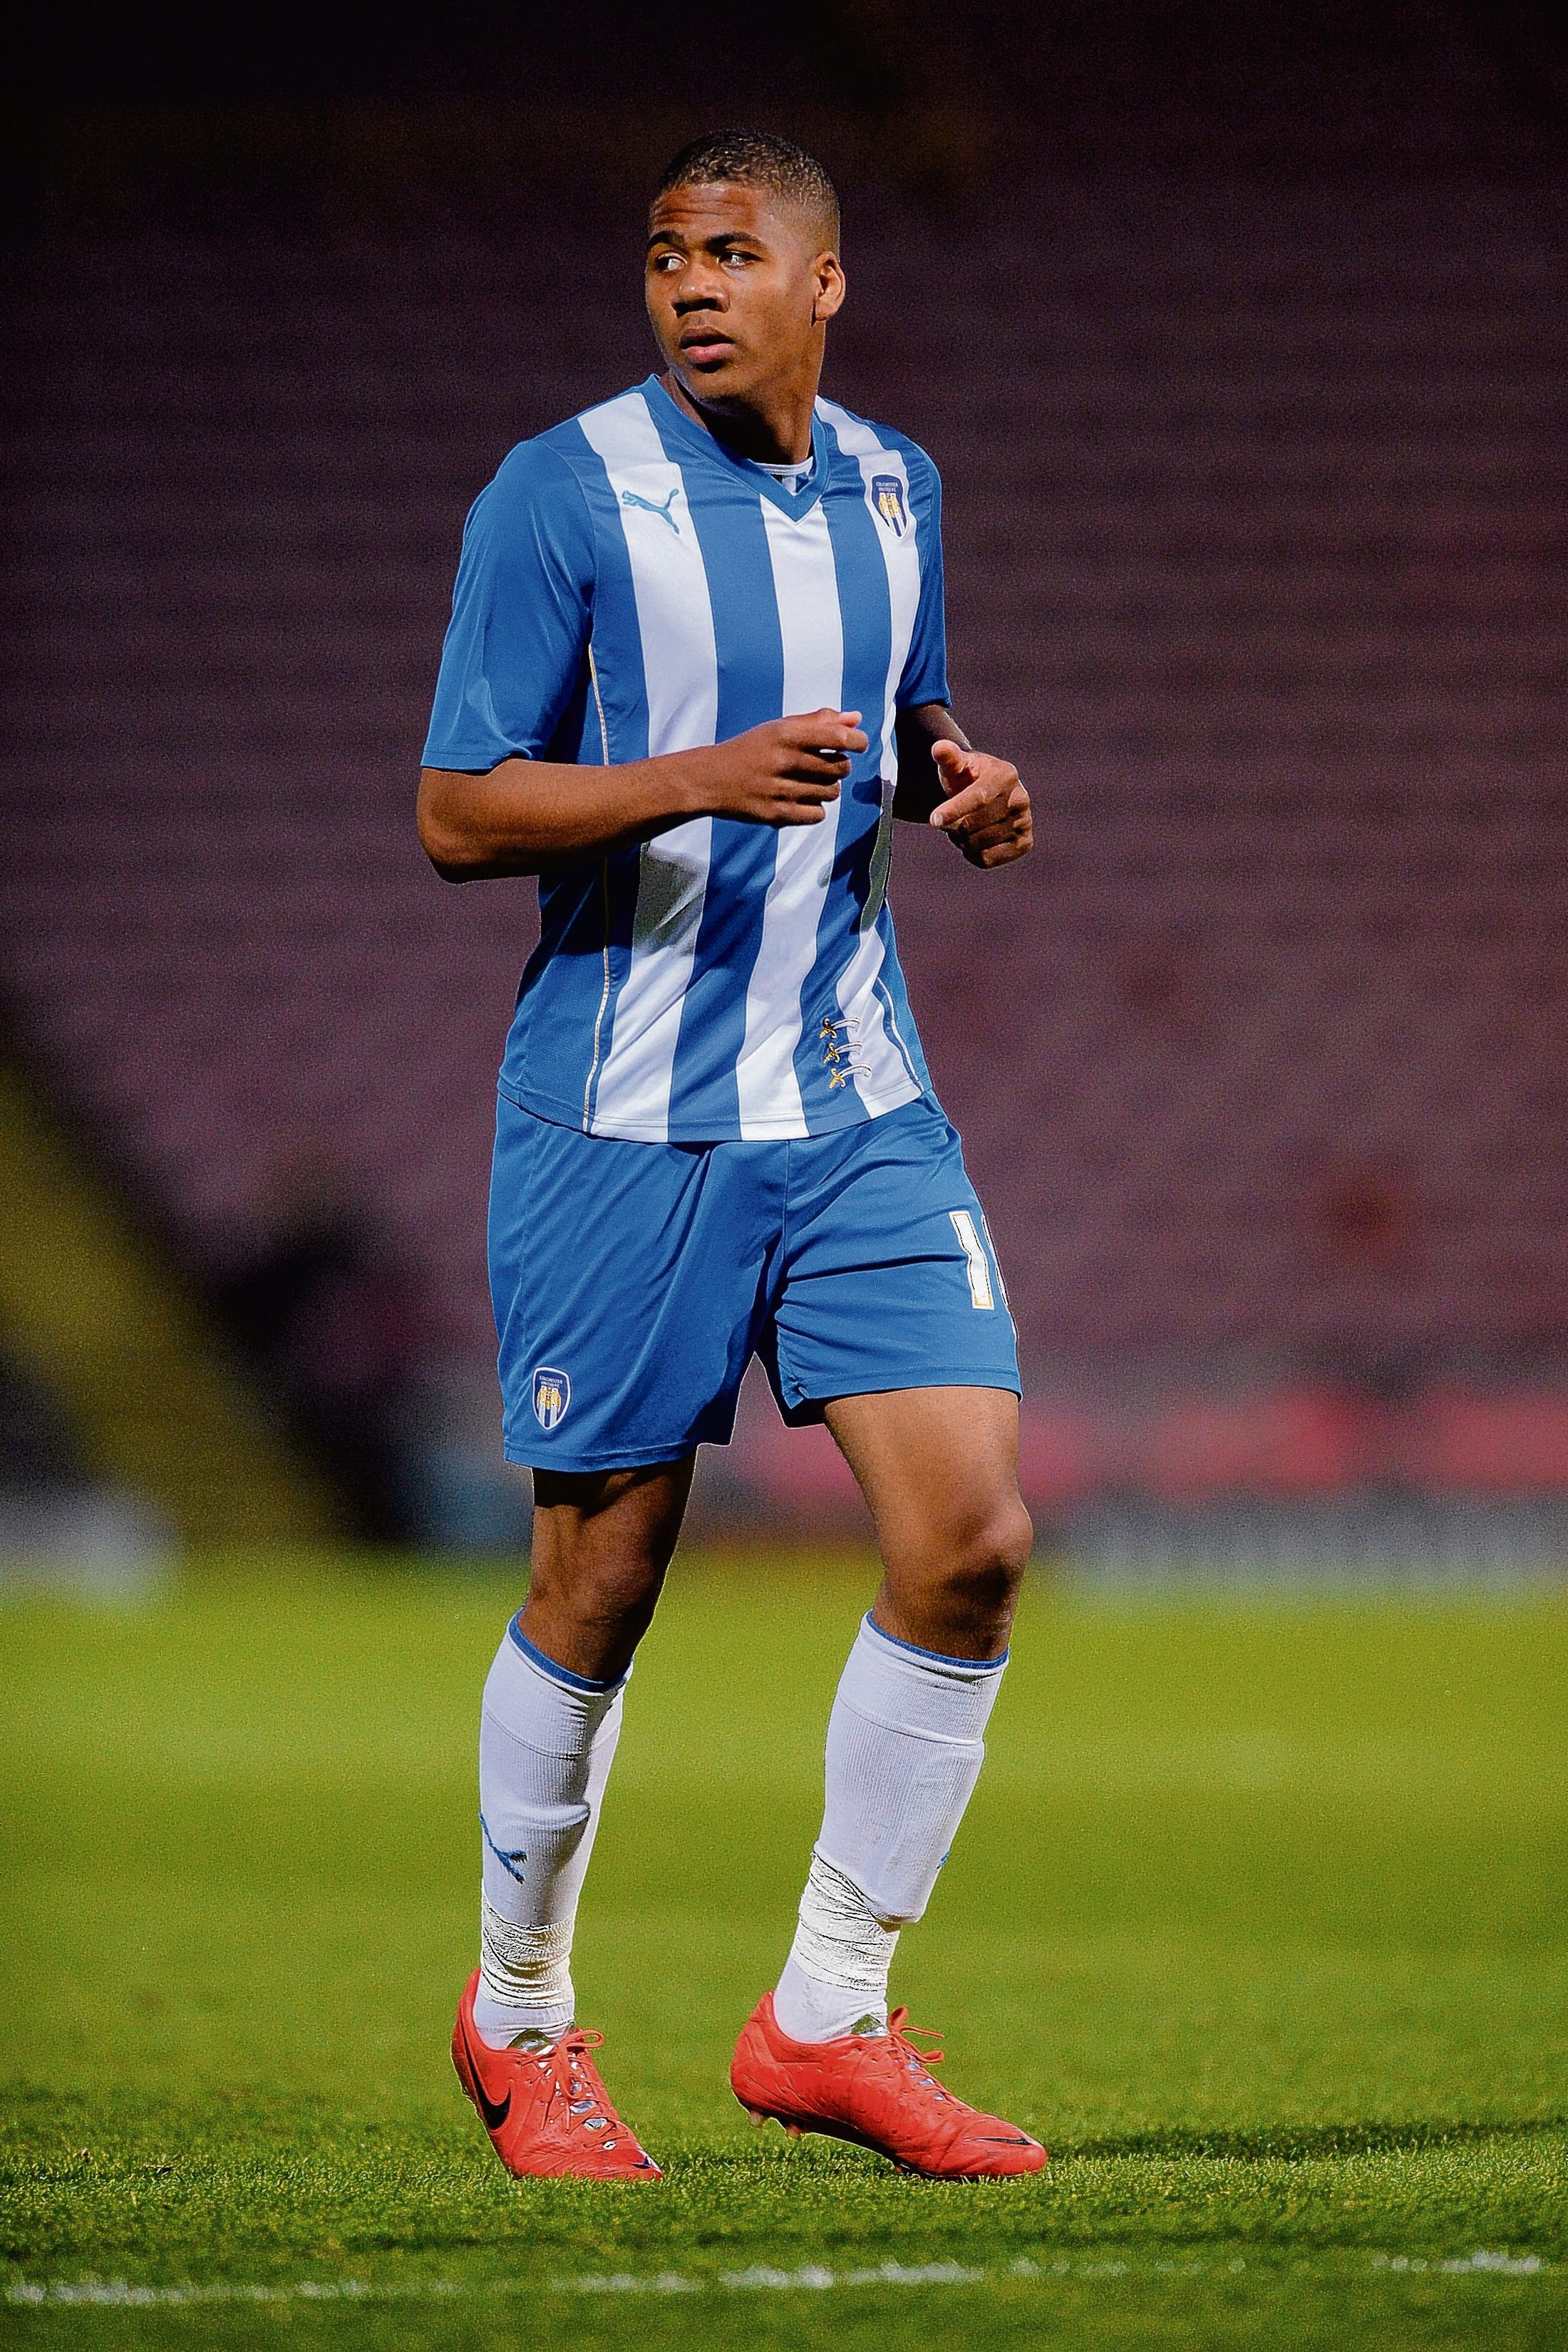 Brilliant brace - Dominic Smith scored twice in Colchester United under-21s' fine 2-1 triumph at Leeds United on Monday night. Picture: RICHARD BLAXALL